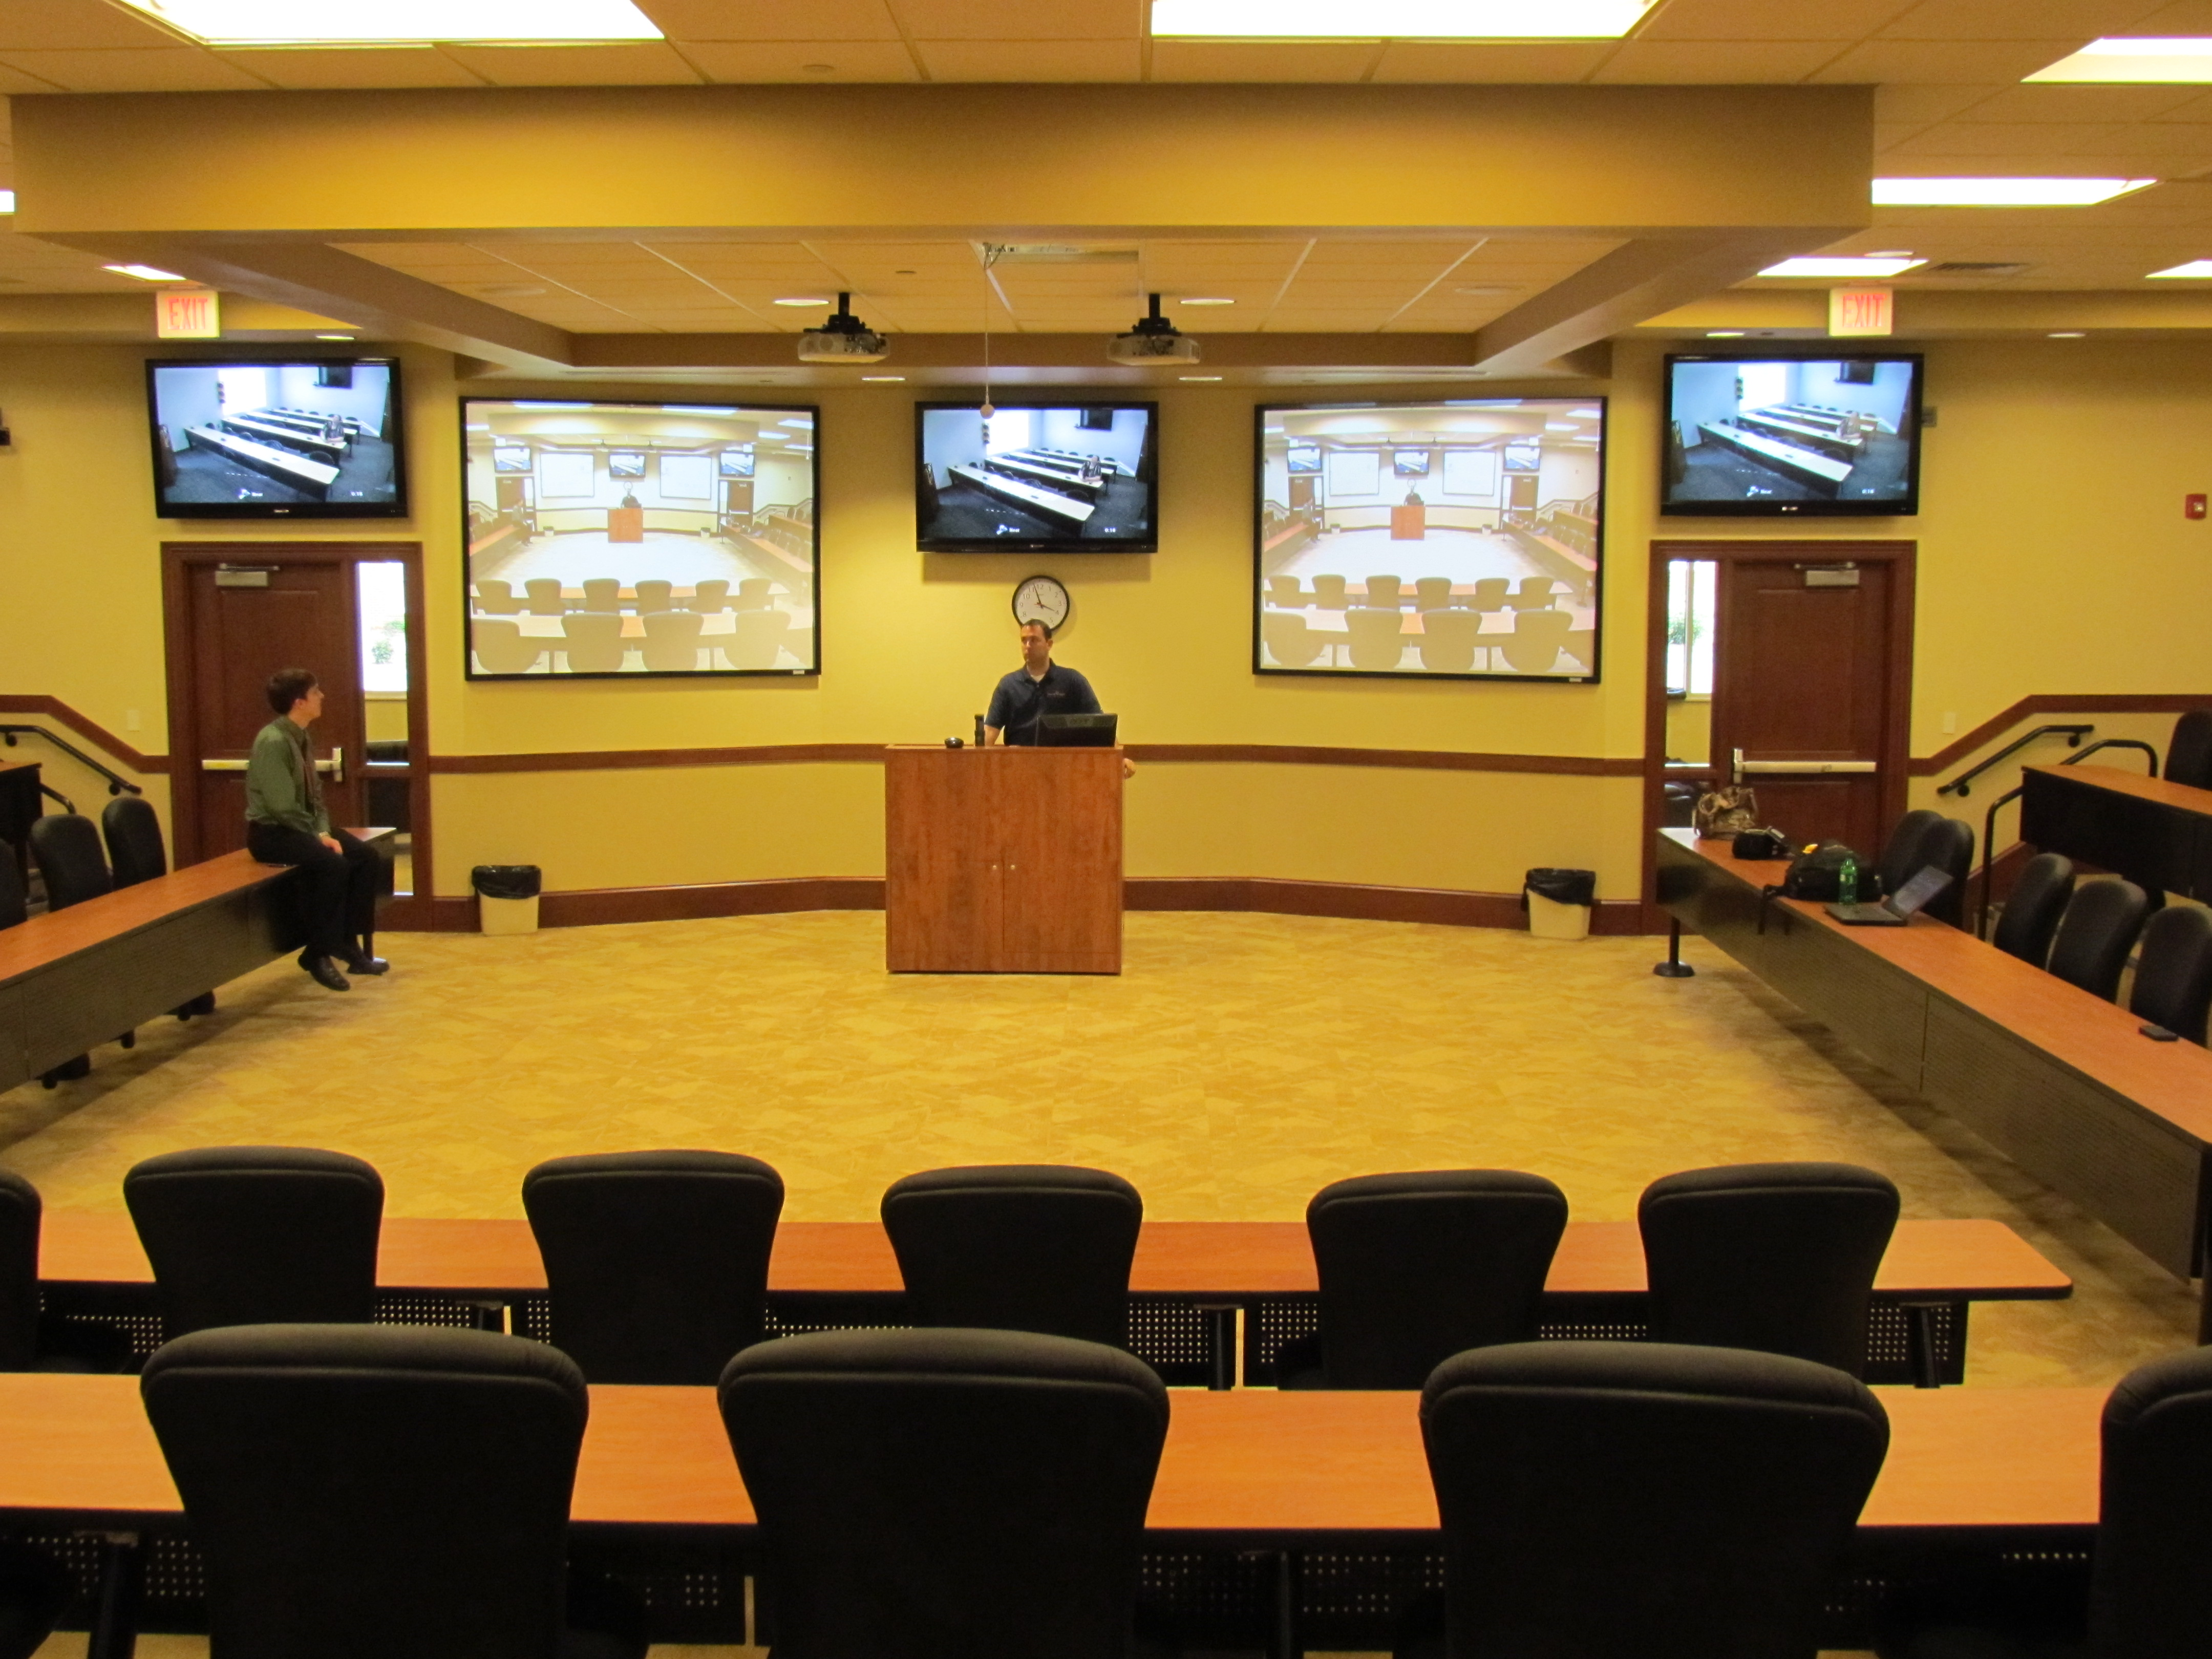 3 Things to consider before installing classroom technology